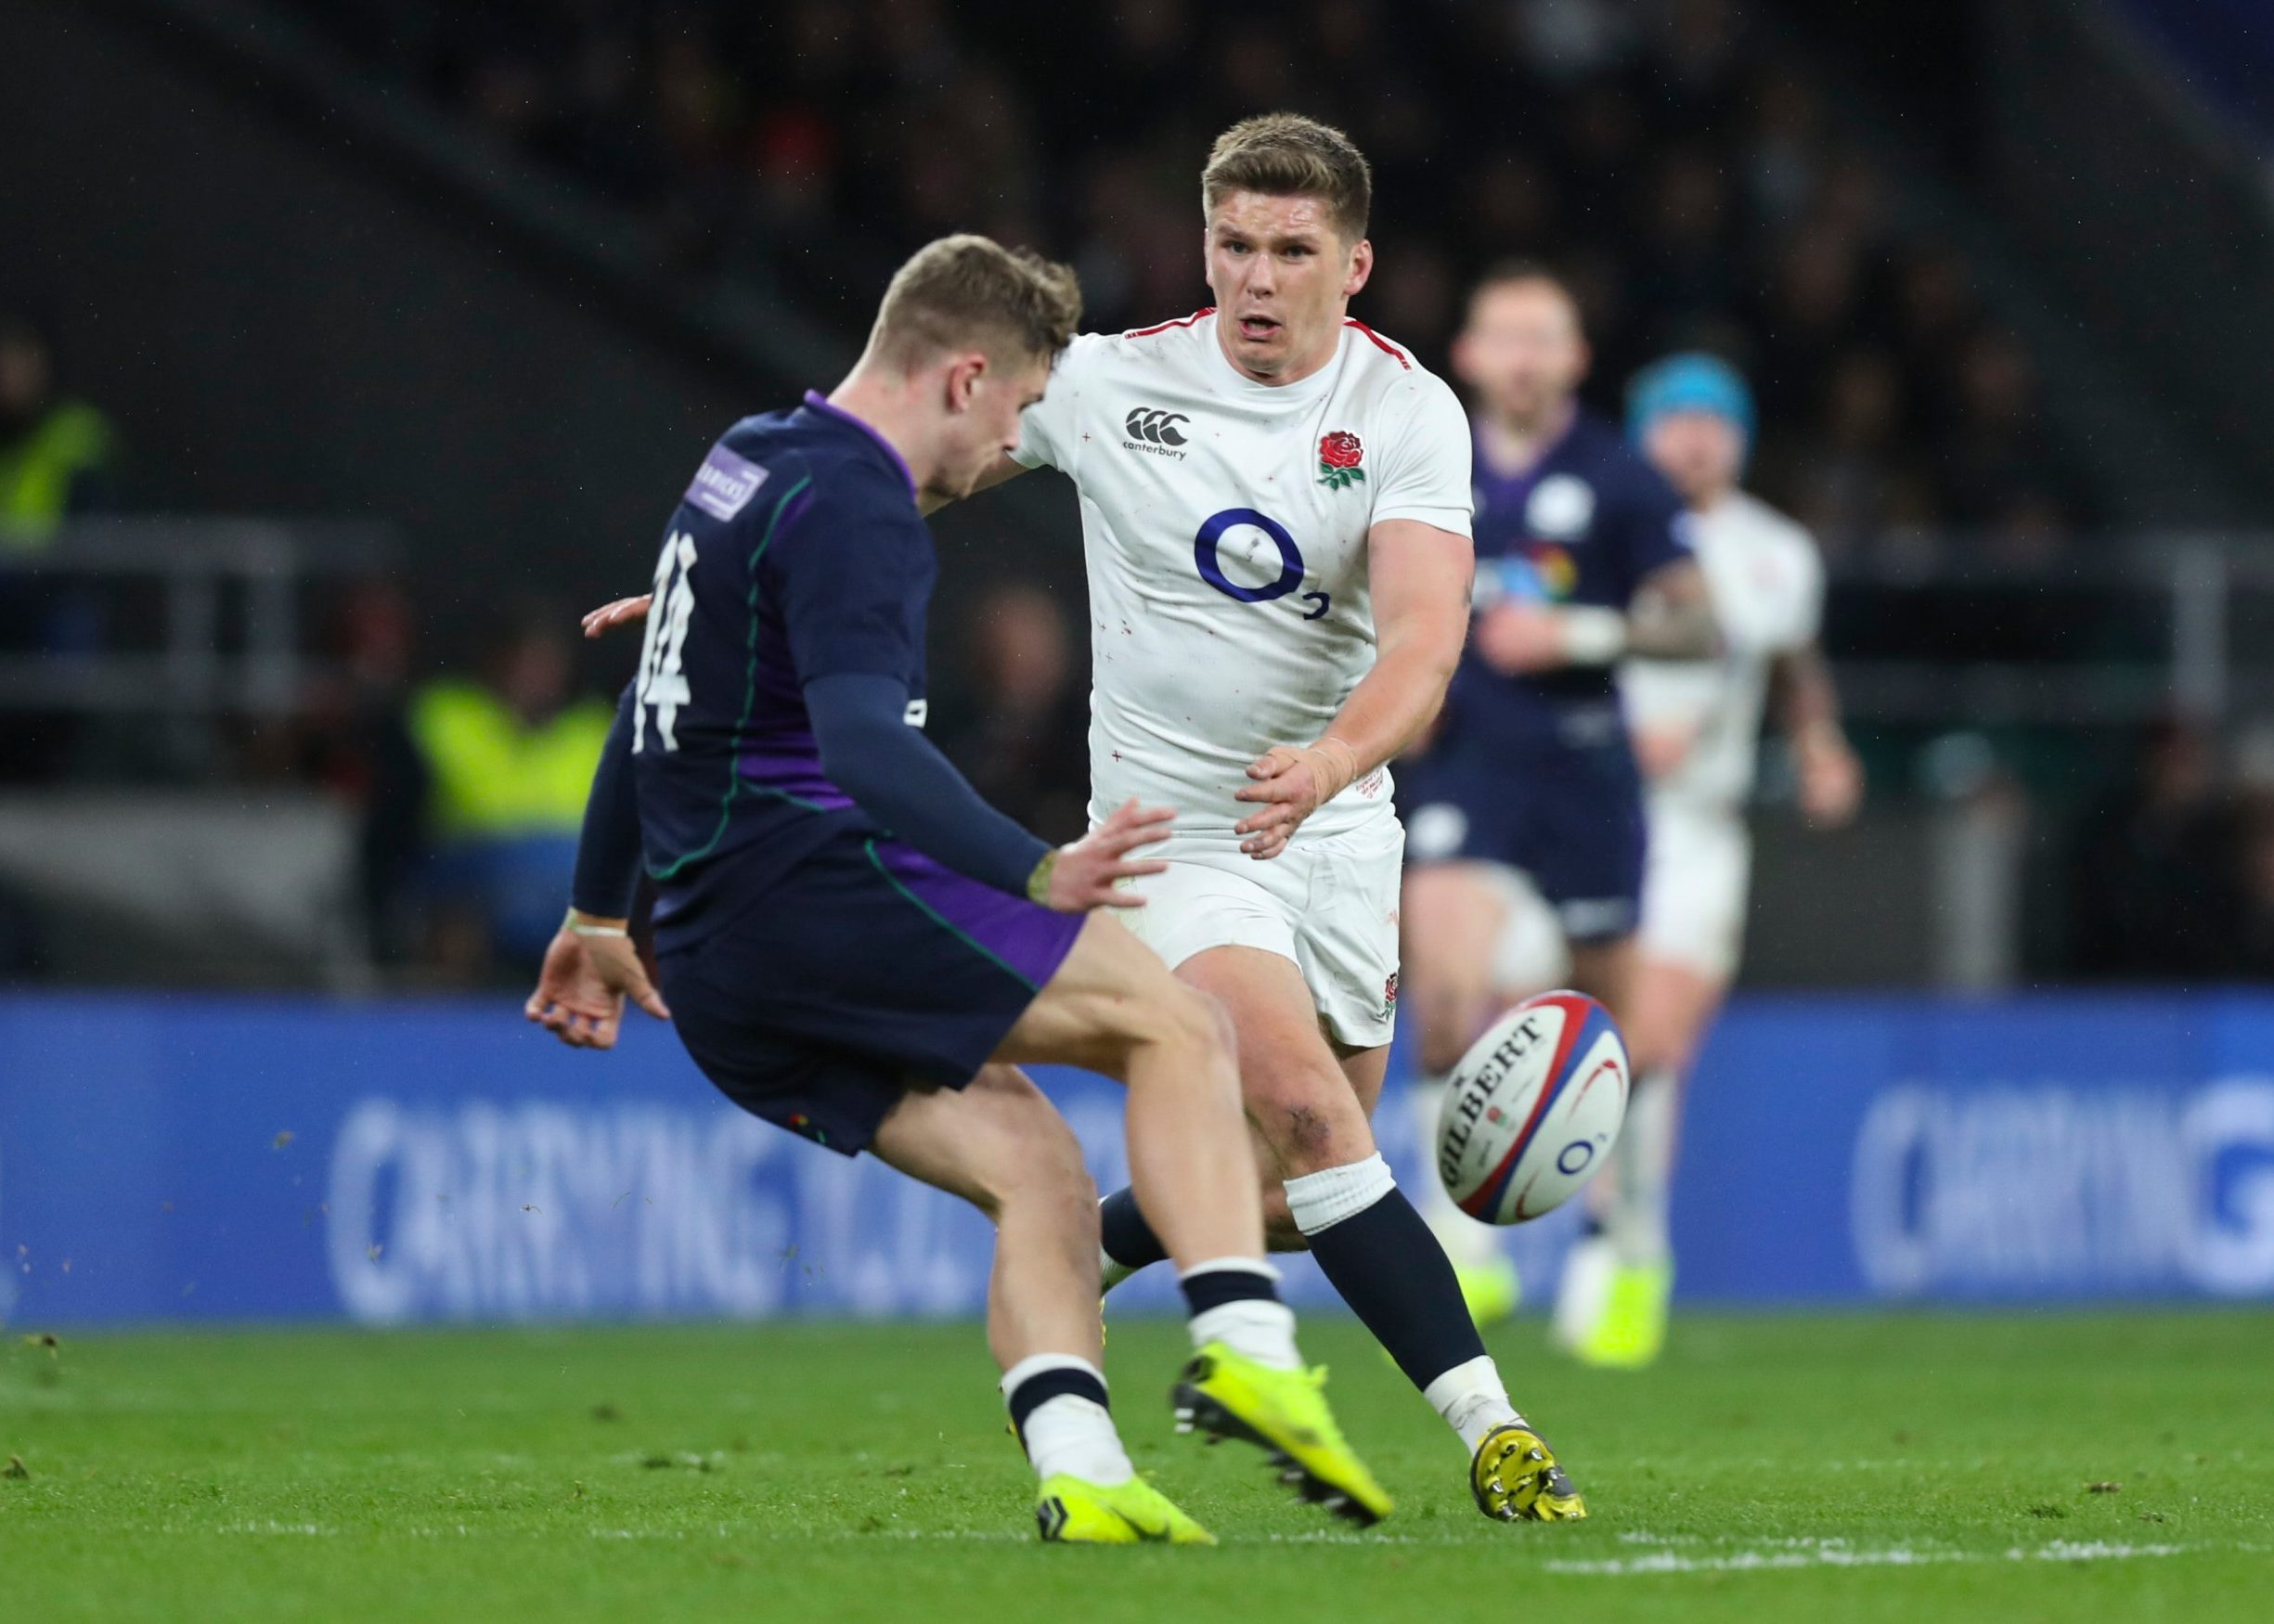 Mandatory Credit: Photo by Jed Leicester/BPI/REX (10157838y) The sequence of Owen Farrell (Captain) of England tackling Darcy Graham of Scotland by using his shoulder (3 of 7) England v Scotland, Guinness Six Nations, Rugby Union, Twickenham Stadium, London, UK - 16 Mar 2019